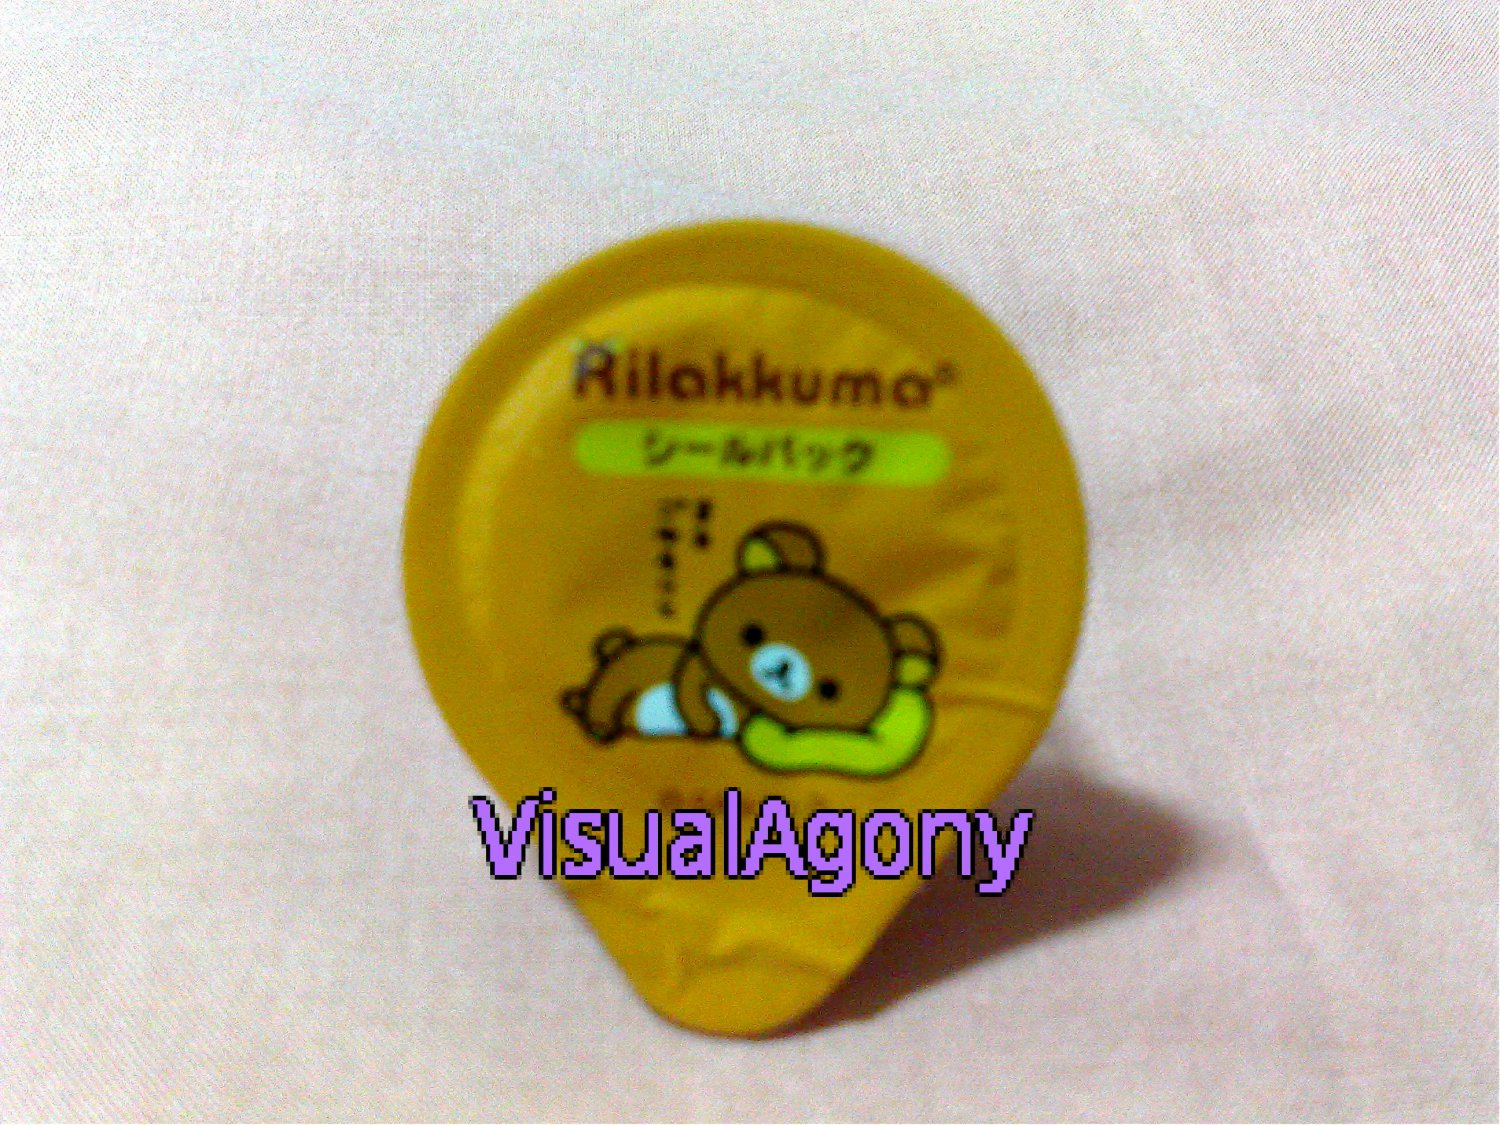 San-X Rilakkuma Sticker Flakes in Cup